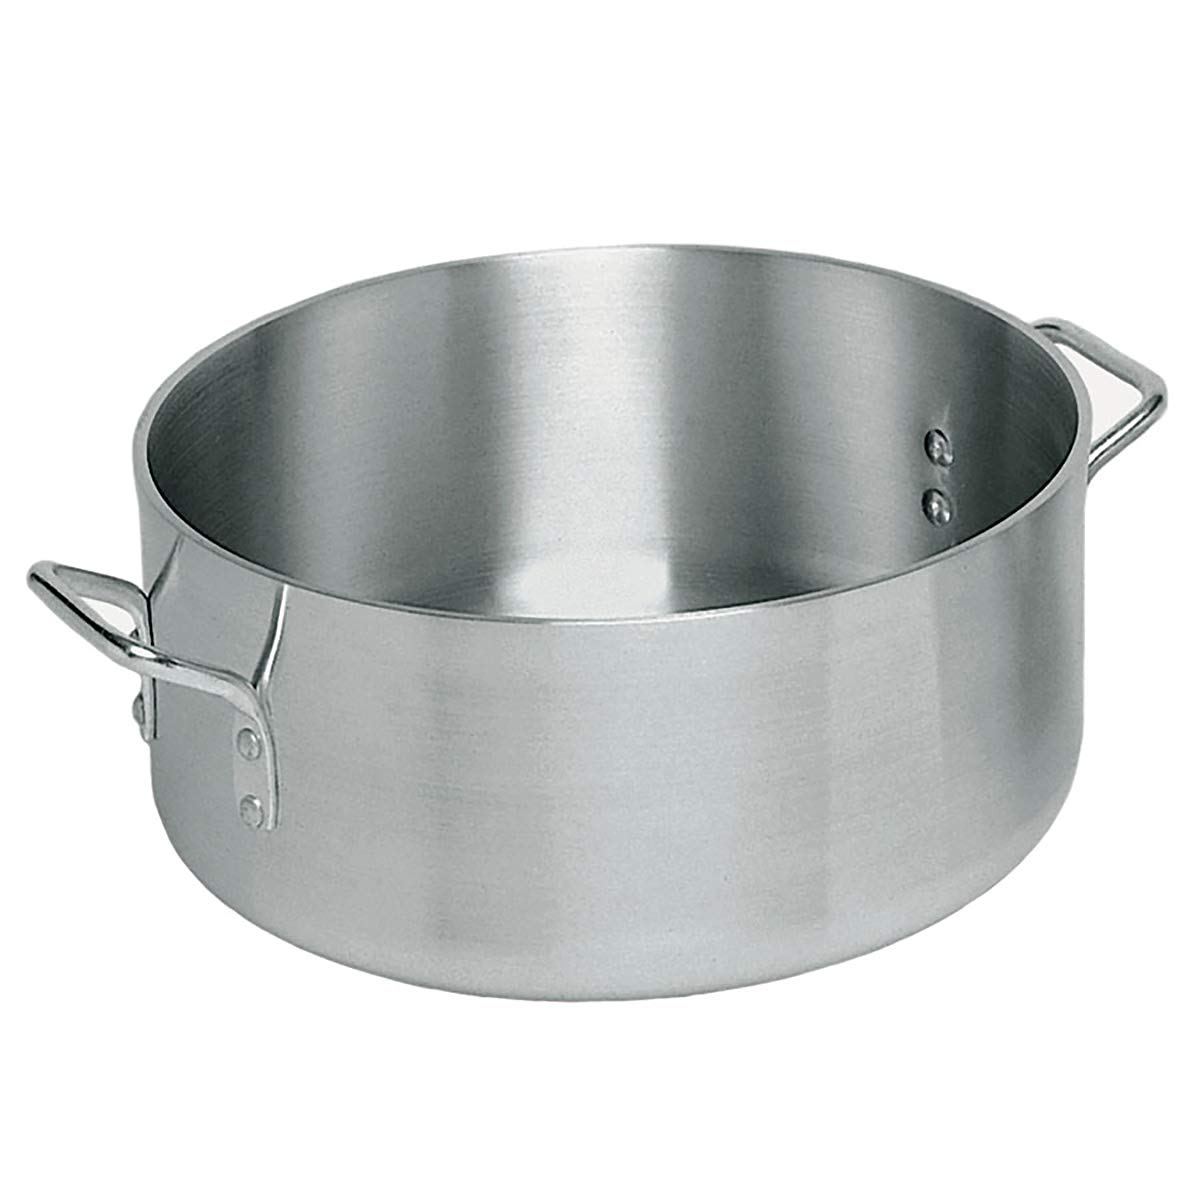 Update International ABR-18 18-Quart Aluminum Brazier food service warehouse